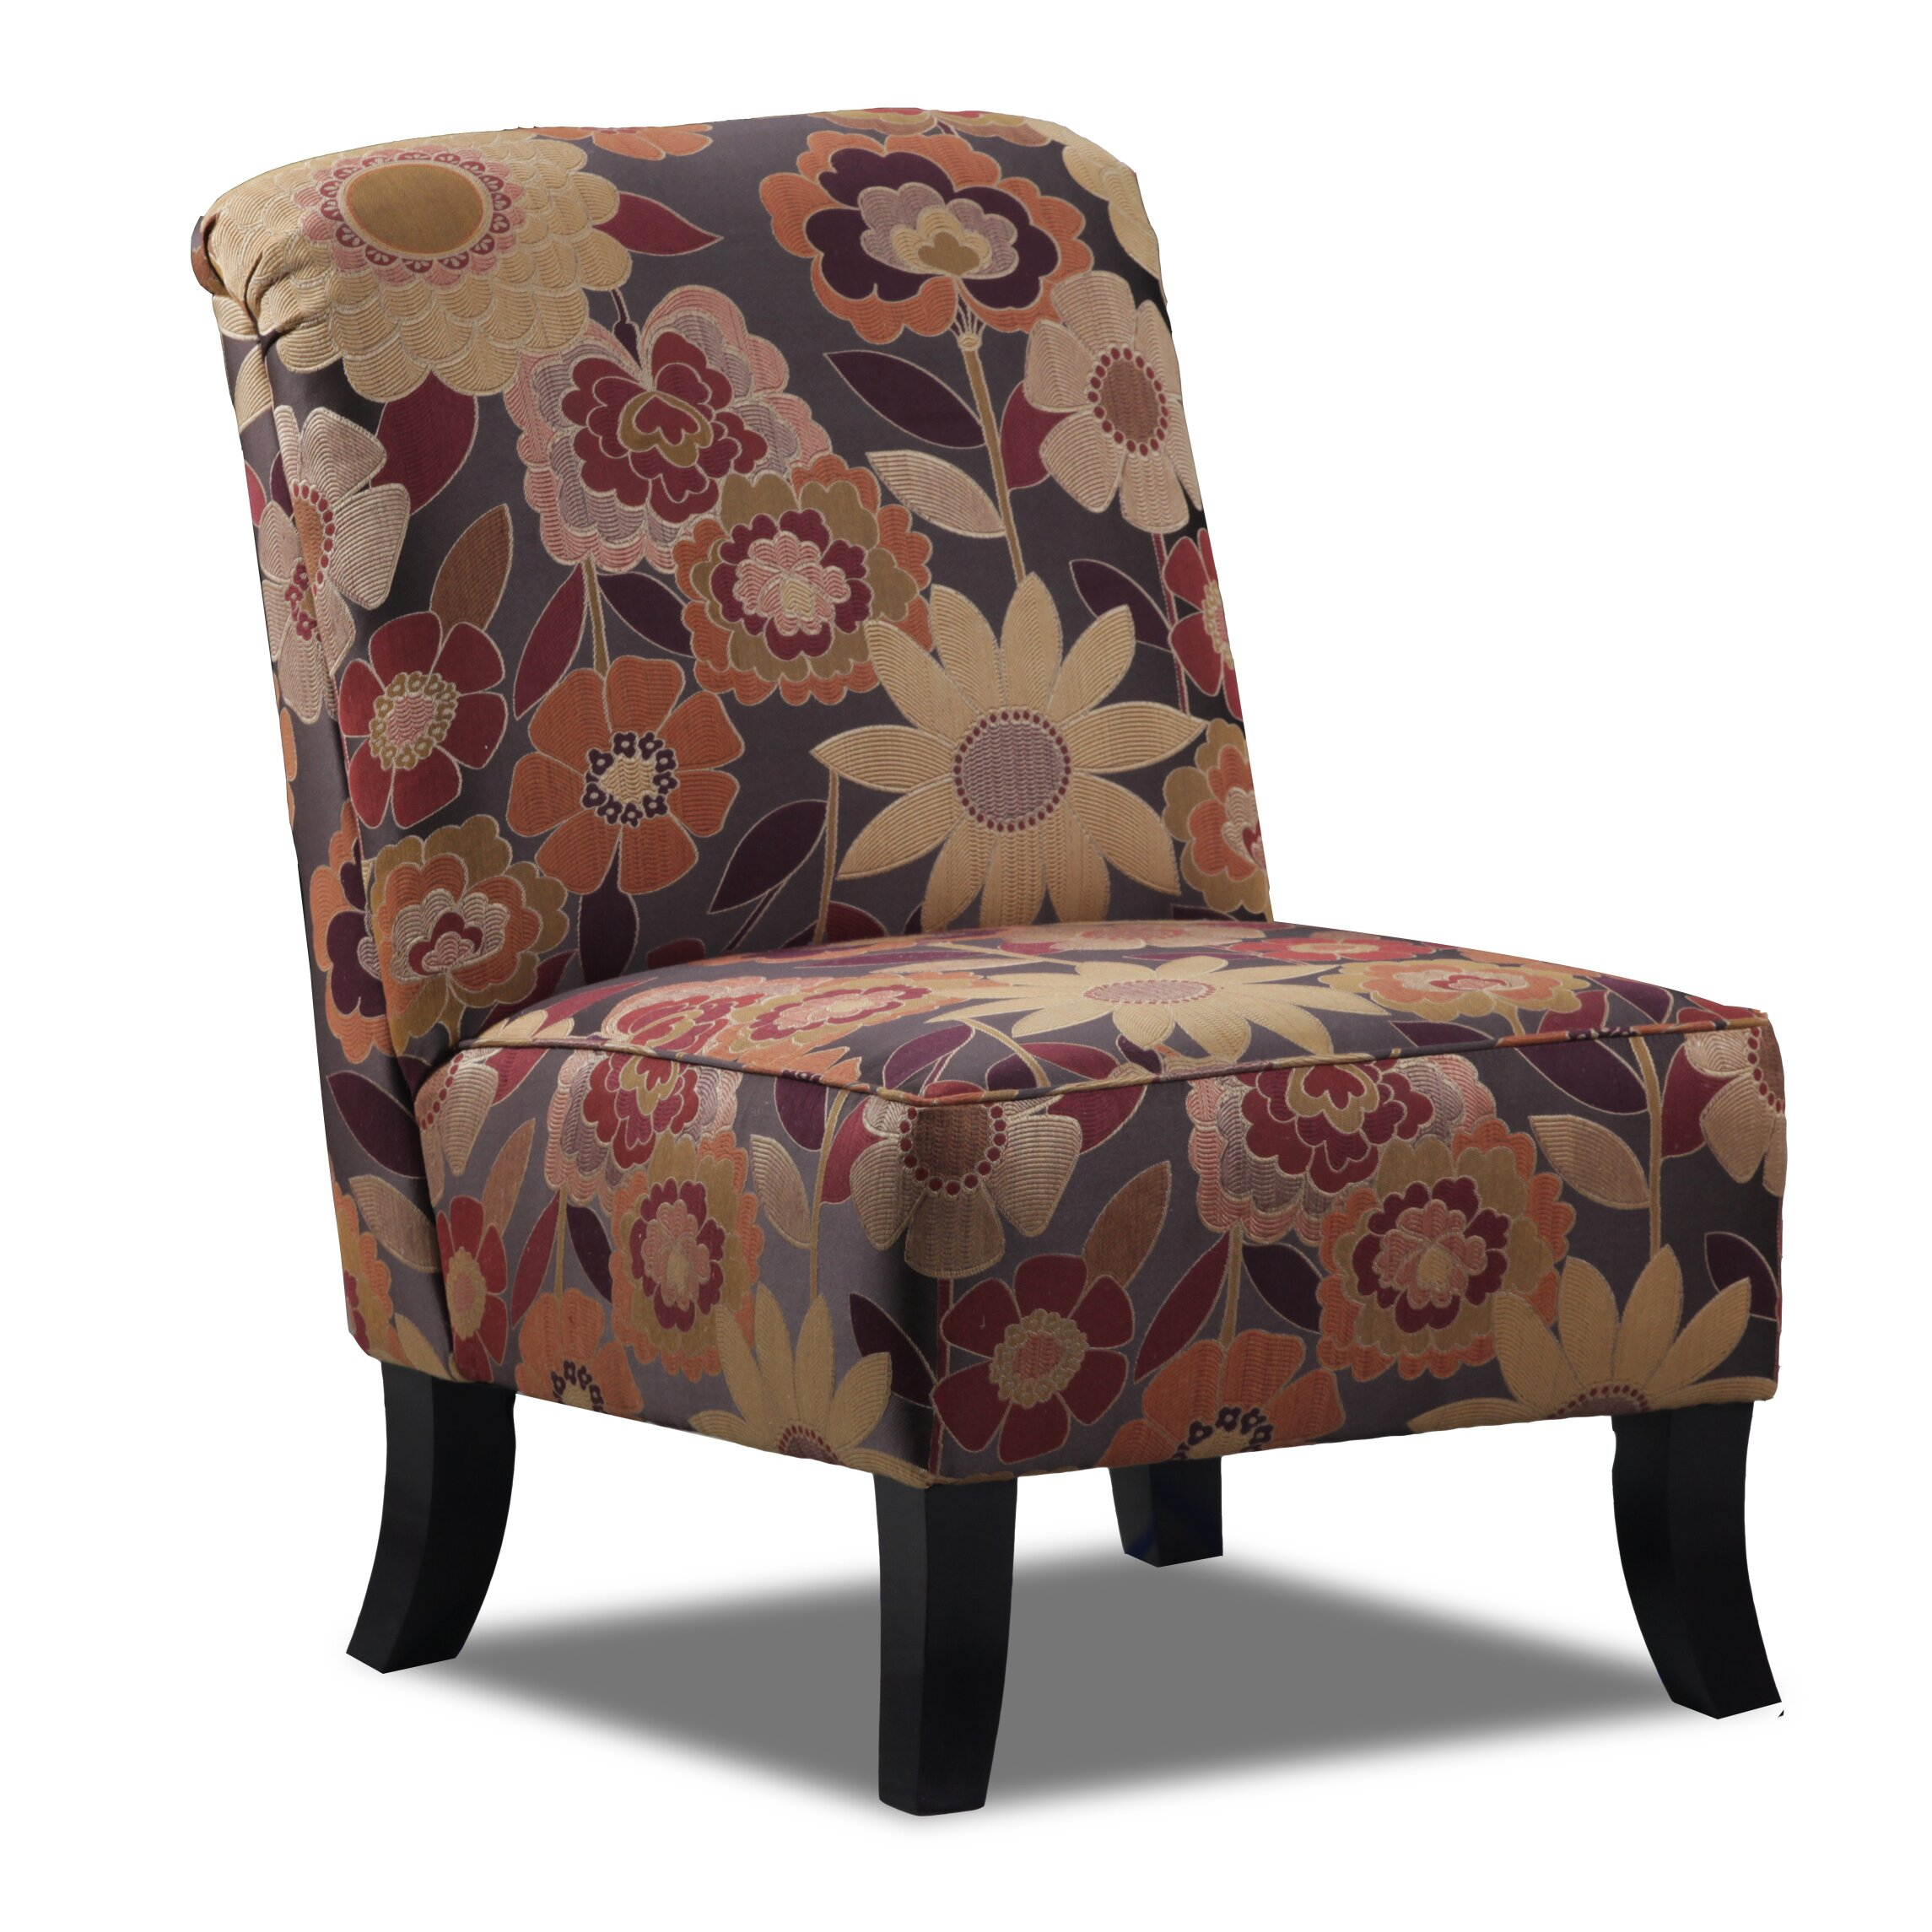 Closeout bathroom vanities and sinks - Red Barrel Studio Simmons Upholstery Seymour Side Chair